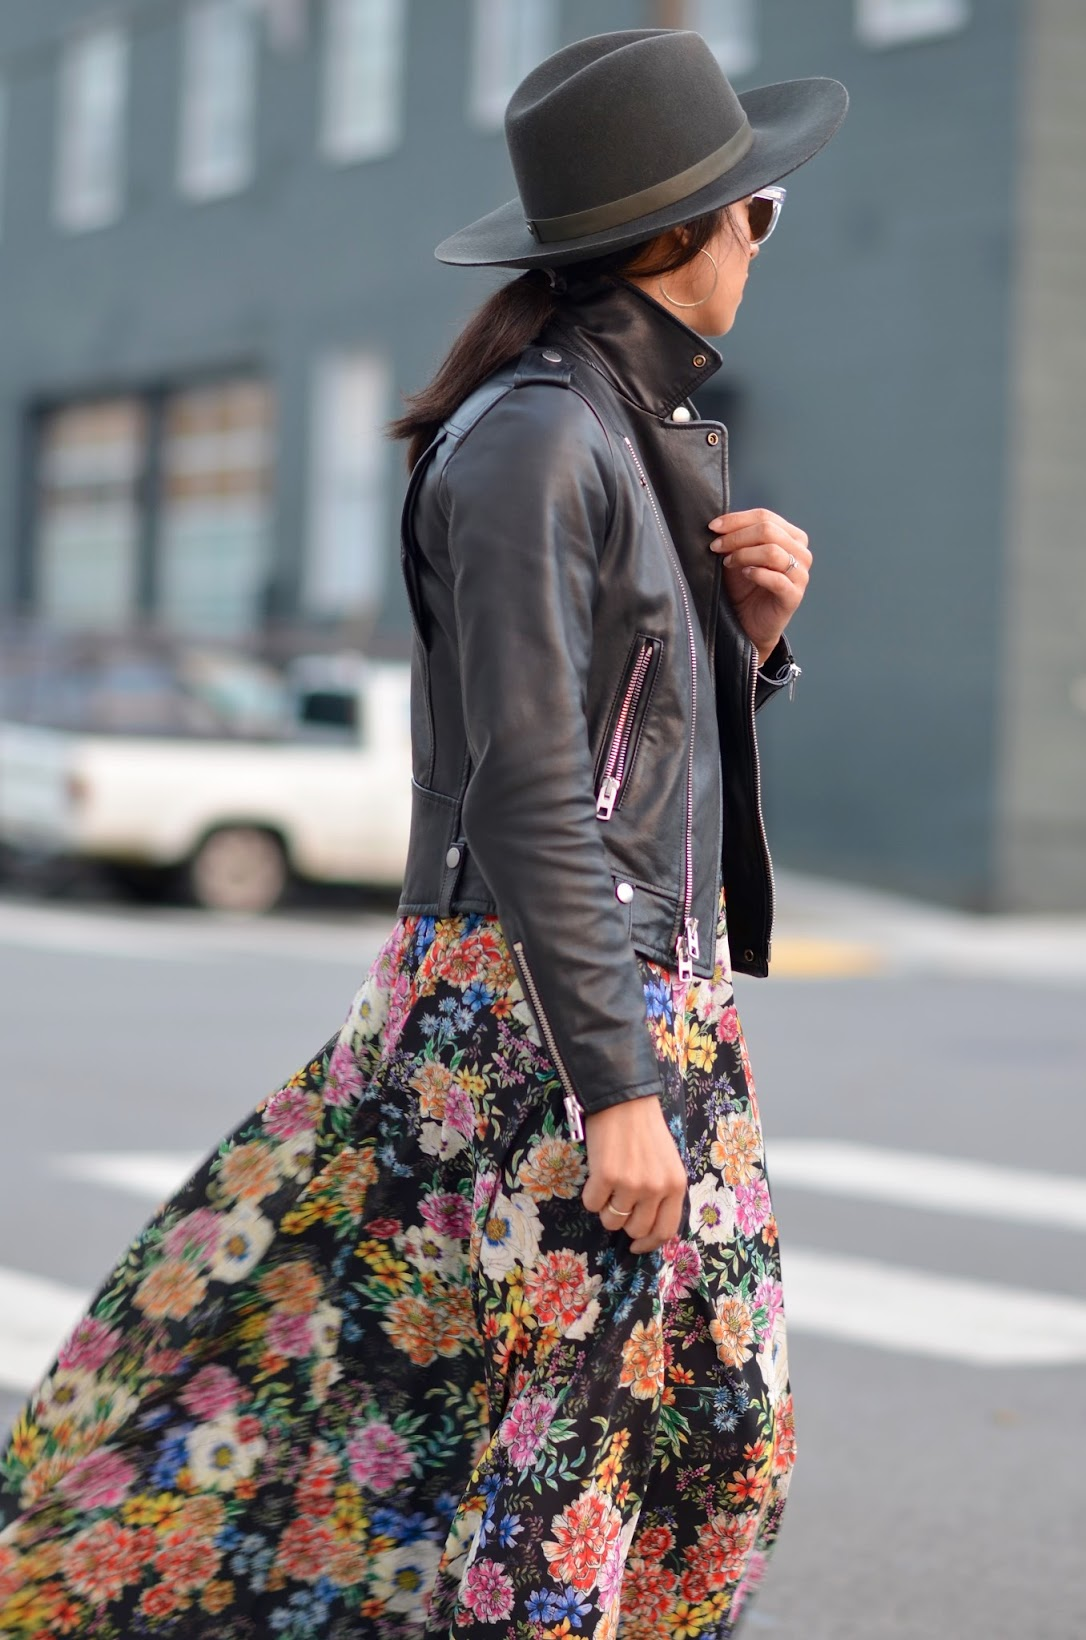 street style blogger, Yumi Kim Garden floral maxi dress, garden grown maxi dresss, Anthropologie Garden Grown maxi dress, Janessa leone , Aveda red lipstick, hoop earrings, latina fashion blogger, San Francisco chic style